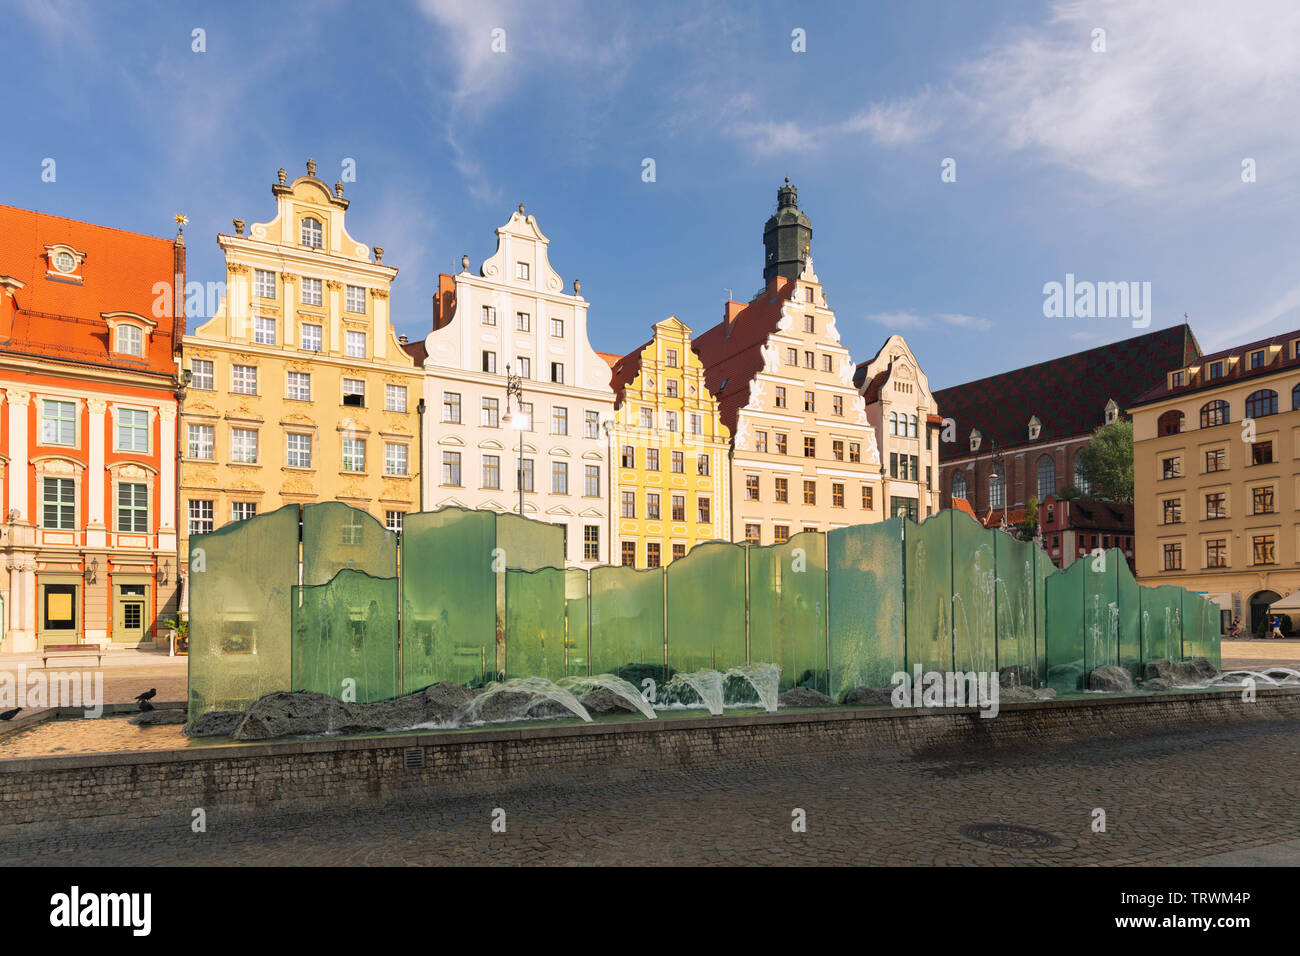 Wroclaw. Wroclaw.  The old town with a city fountain Stock Photo